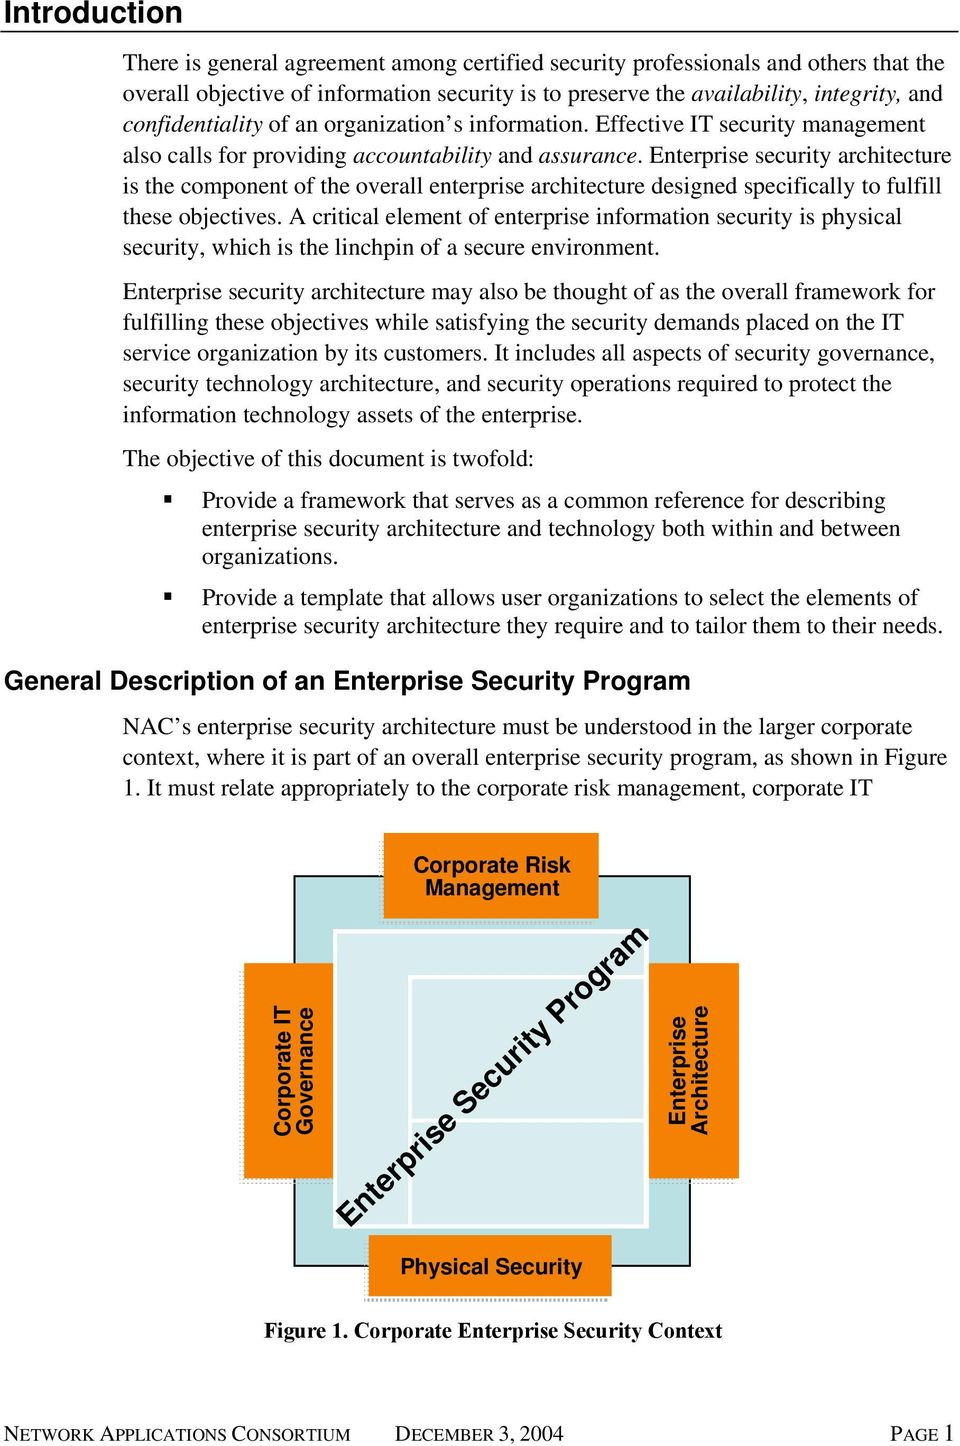 Enterprise security architecture is the component of the overall enterprise architecture designed specifically to fulfill these objectives.